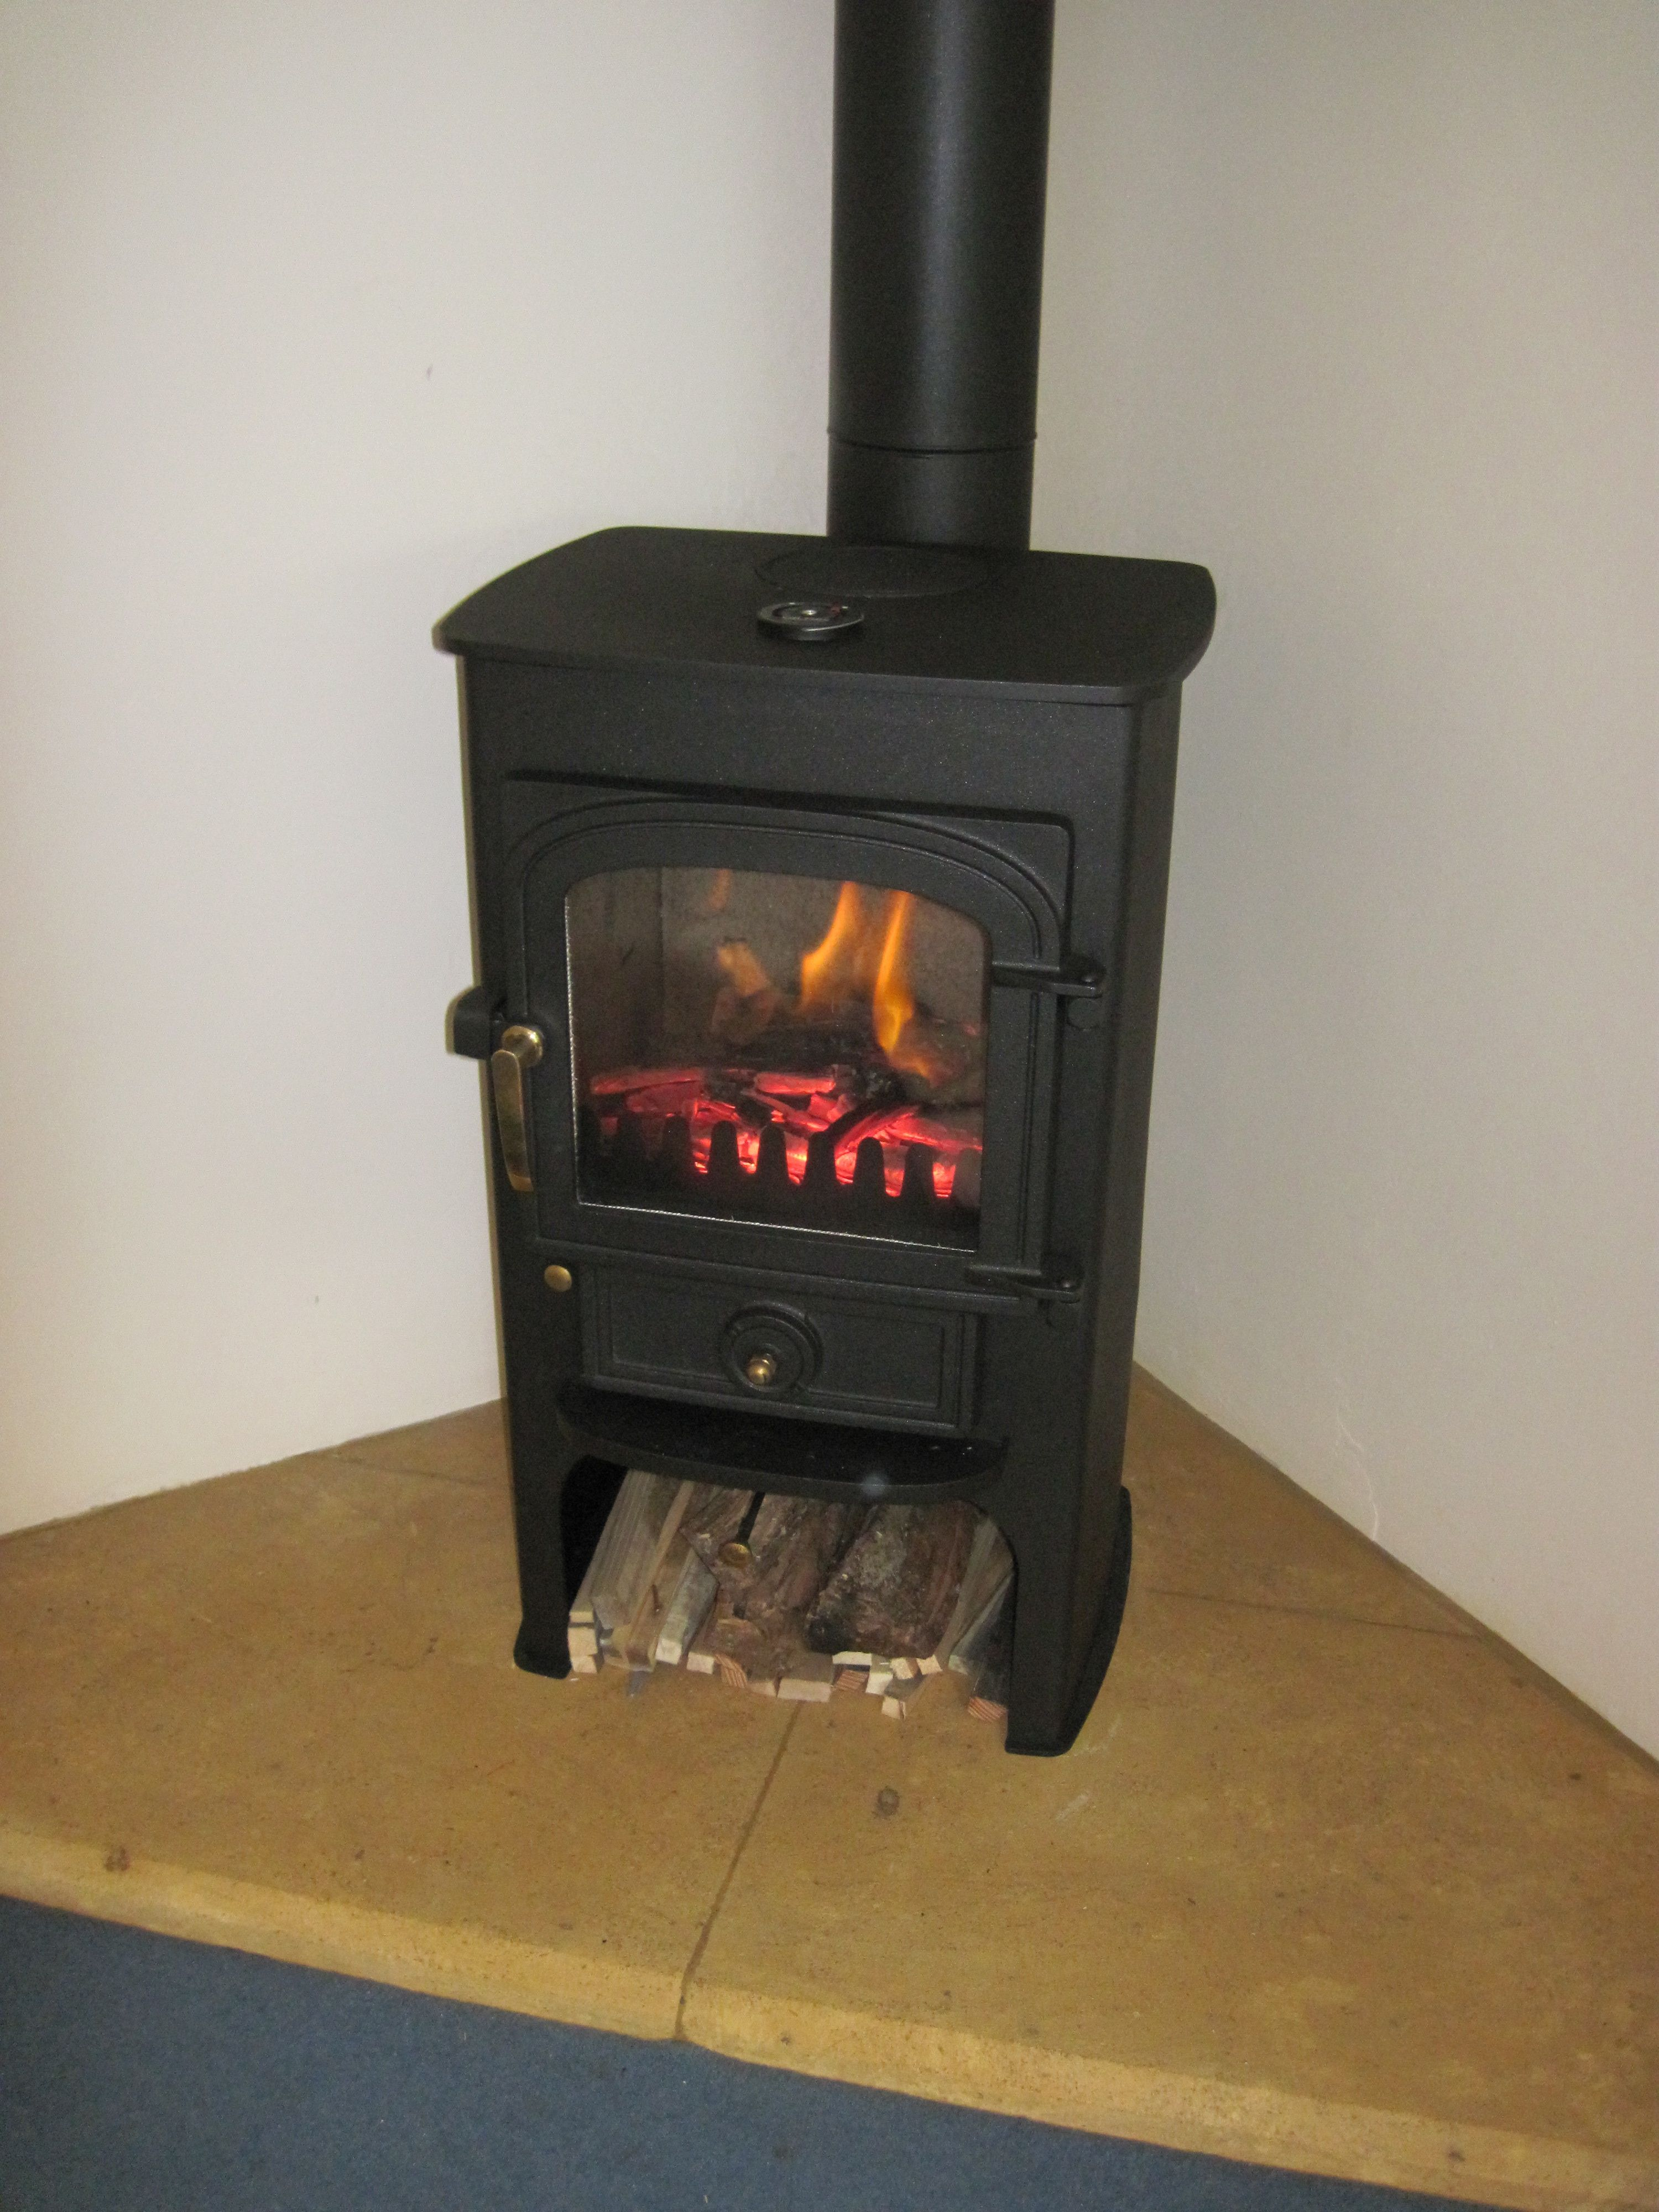 clearview pioneer 400p on a corner cotswold stone hearth with rear